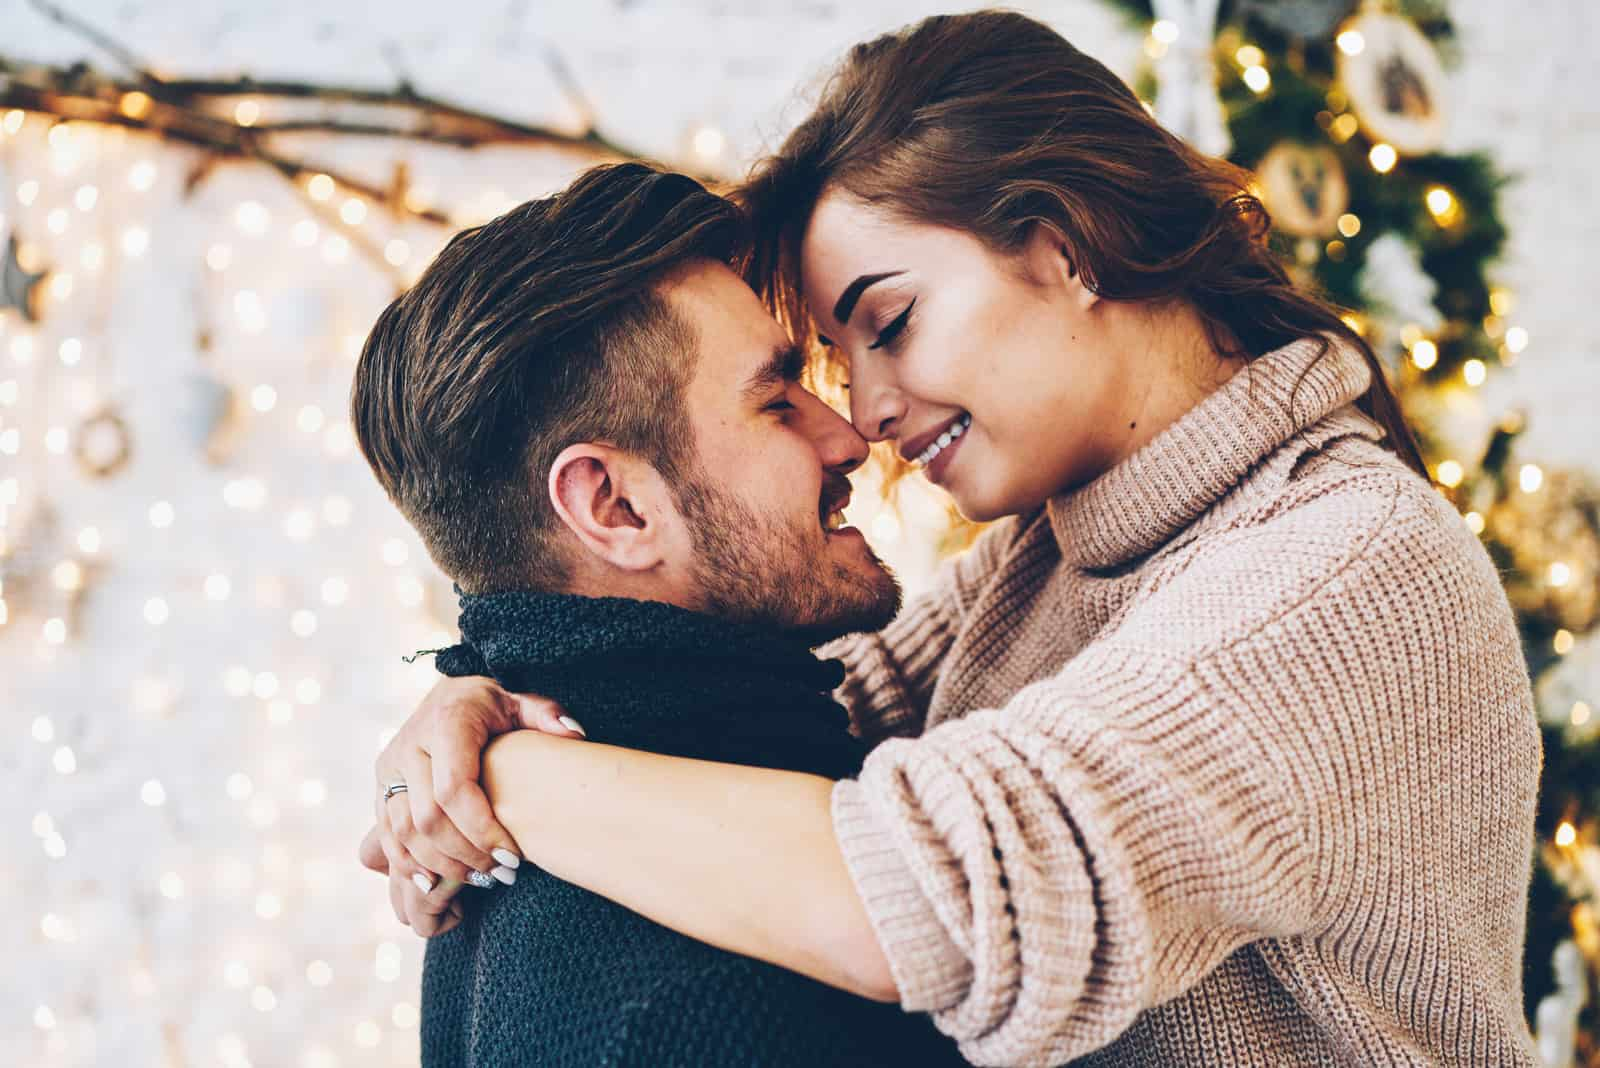 a man and a woman hugging each other cuddle